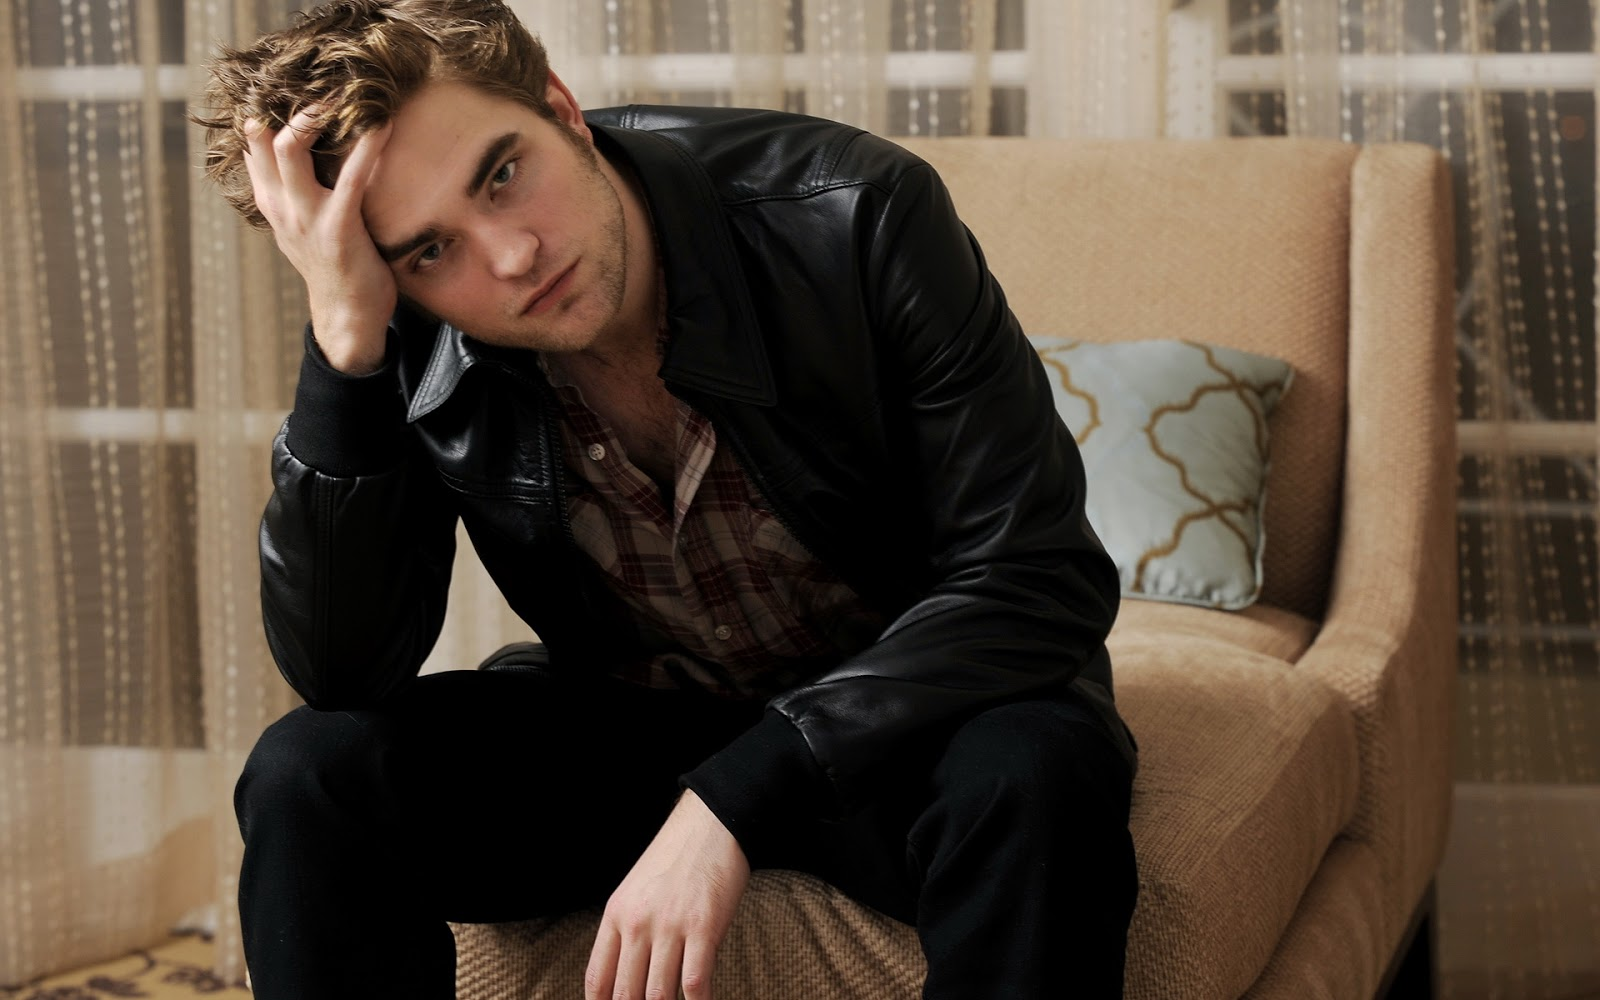 http://2.bp.blogspot.com/_2UbsSBz9ckE/S7ka2AC4vvI/AAAAAAAABLo/aWG9HHzapH4/s1600/robert-pattinson-bed-wallpapers_HD_1920x1200.jpg